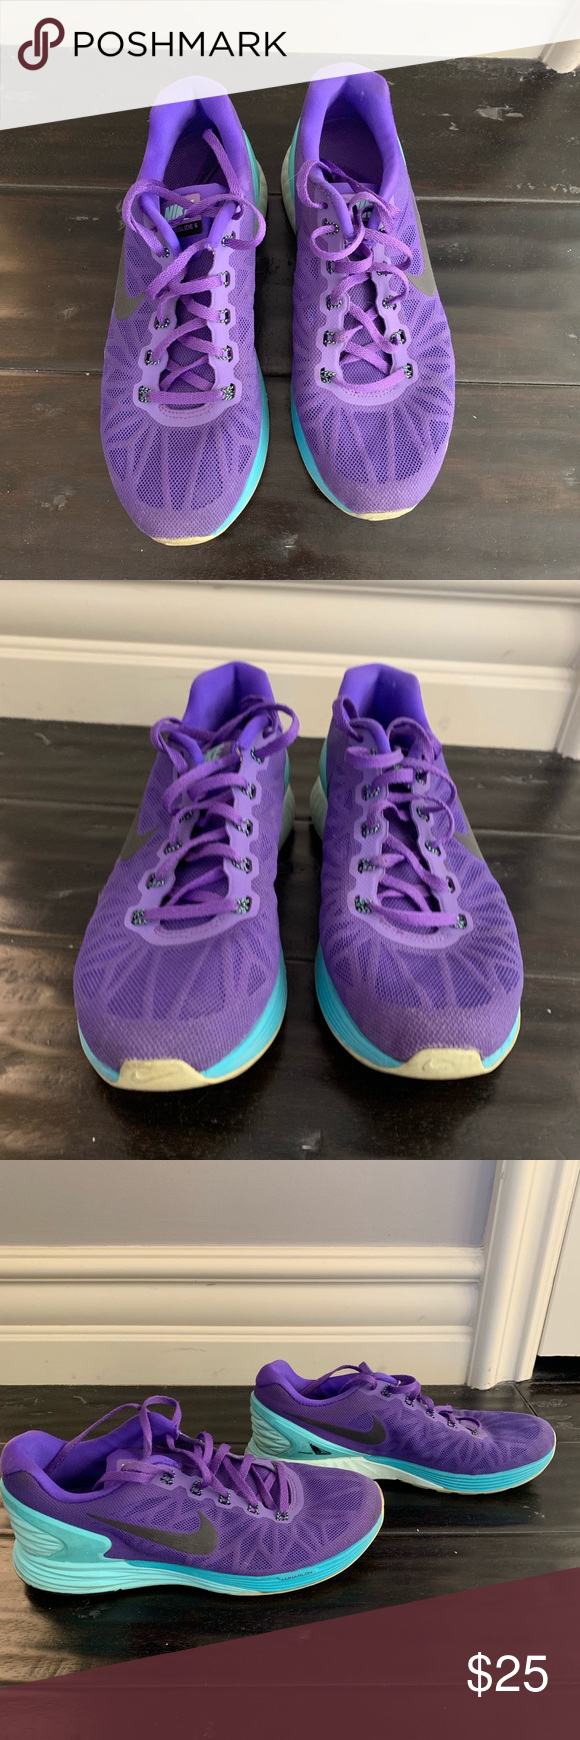 competitive price fe1c2 63c69 Nike lunarglide 6 size 9 Purple and mint green Nike lunarglide tennis  shoes. Worn a bunch but still in okay condition some scratches and a little  dirty.